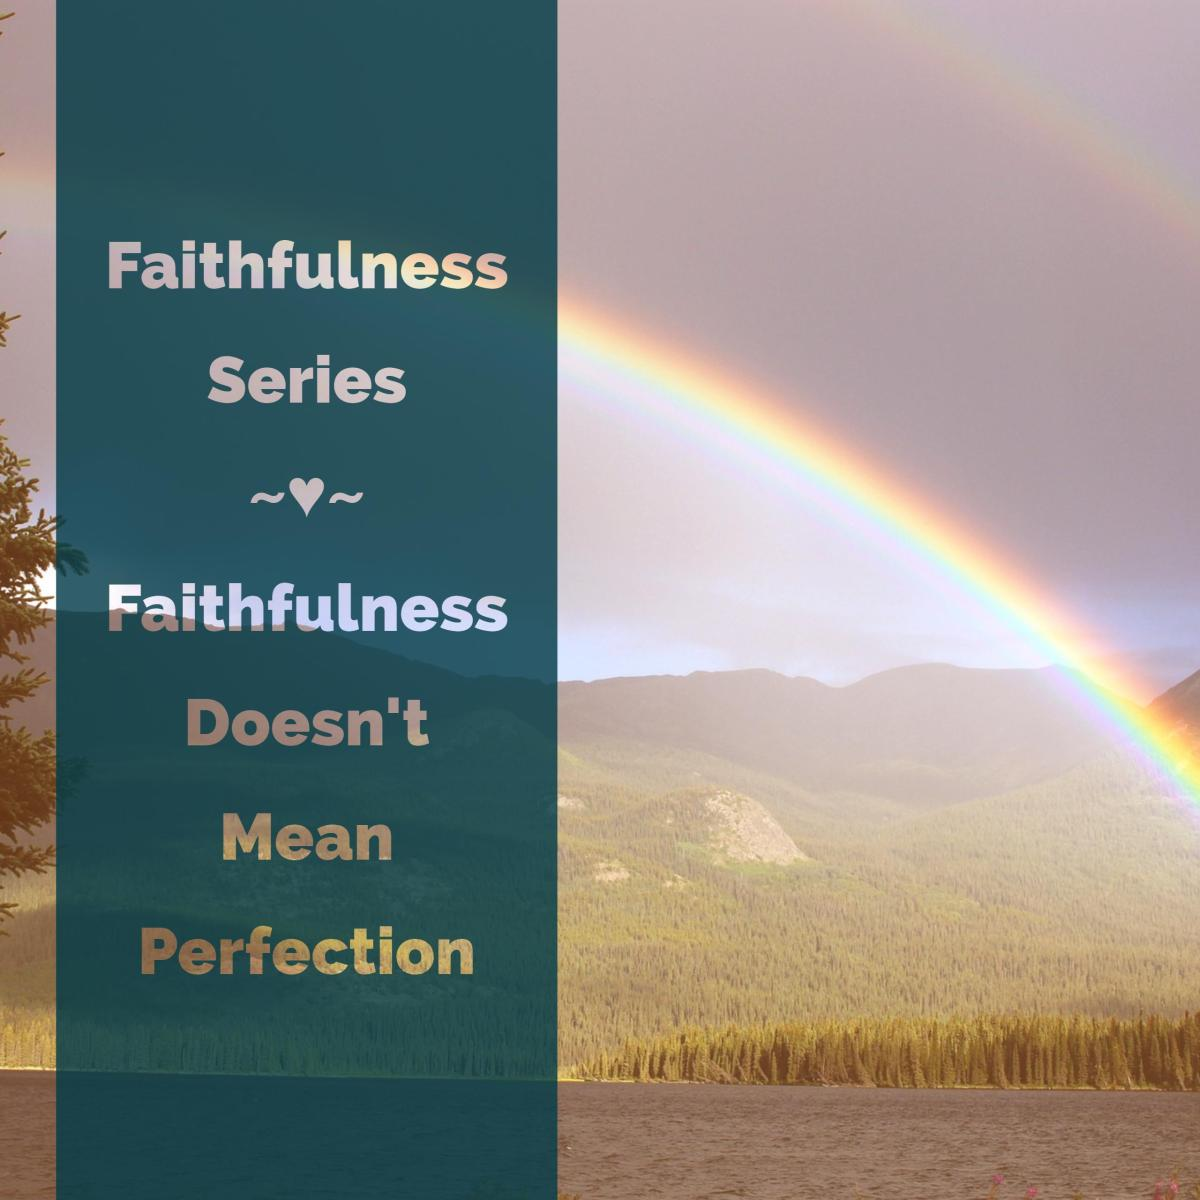 Faithfulness Doesn't Mean Perfection